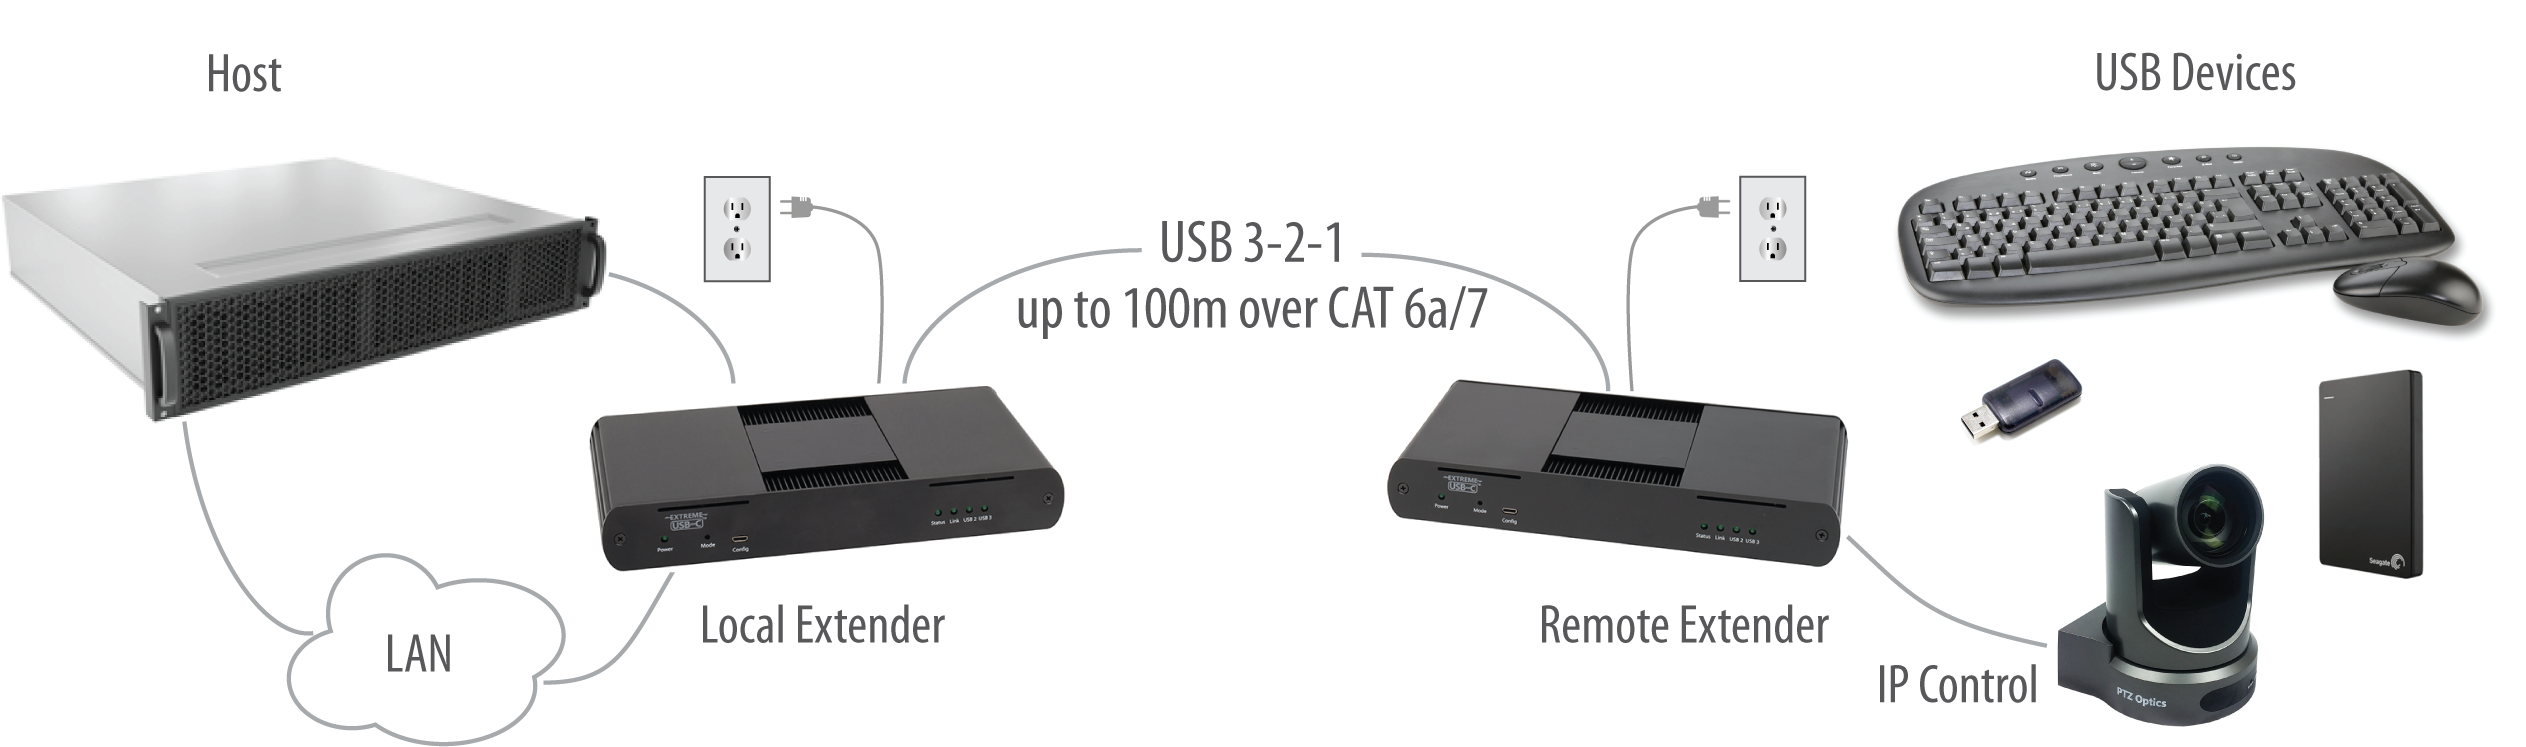 USB 3-2-1 Raven 3104 100m CAT 6a/7 Point-to-Point Extender System Application Diagram